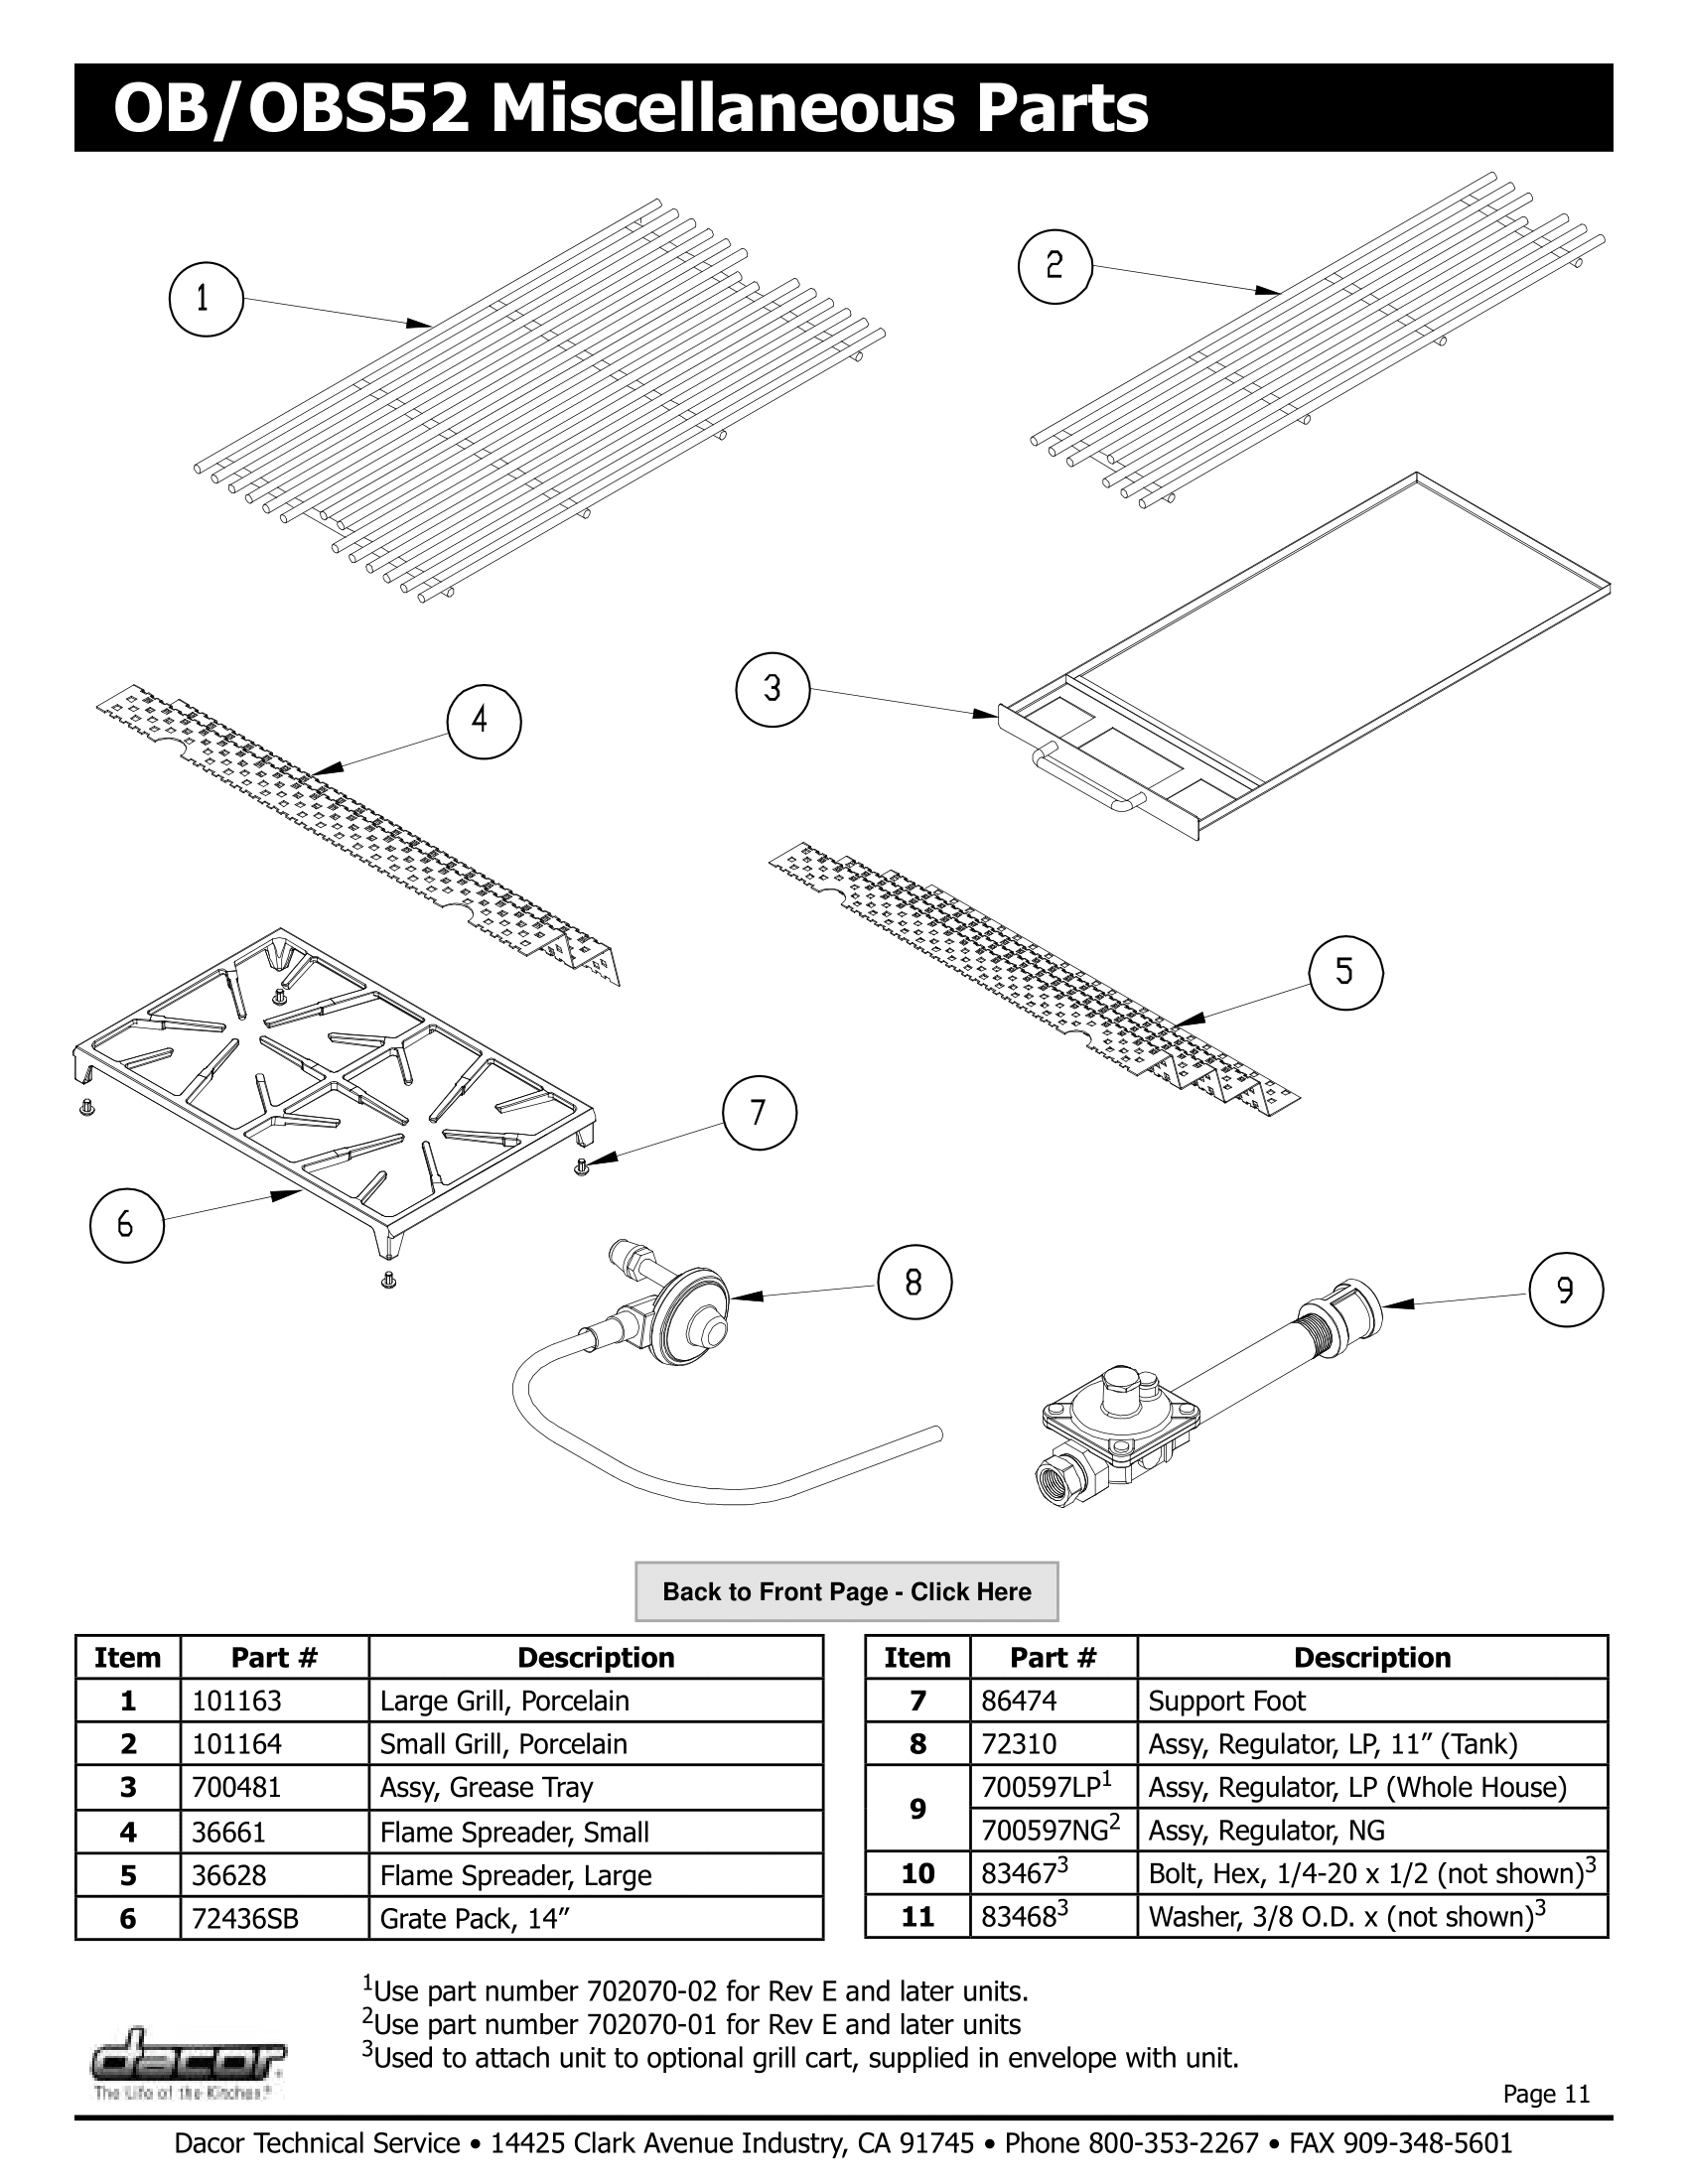 Dacor OBS52 Miscellaneous Parts Schematic